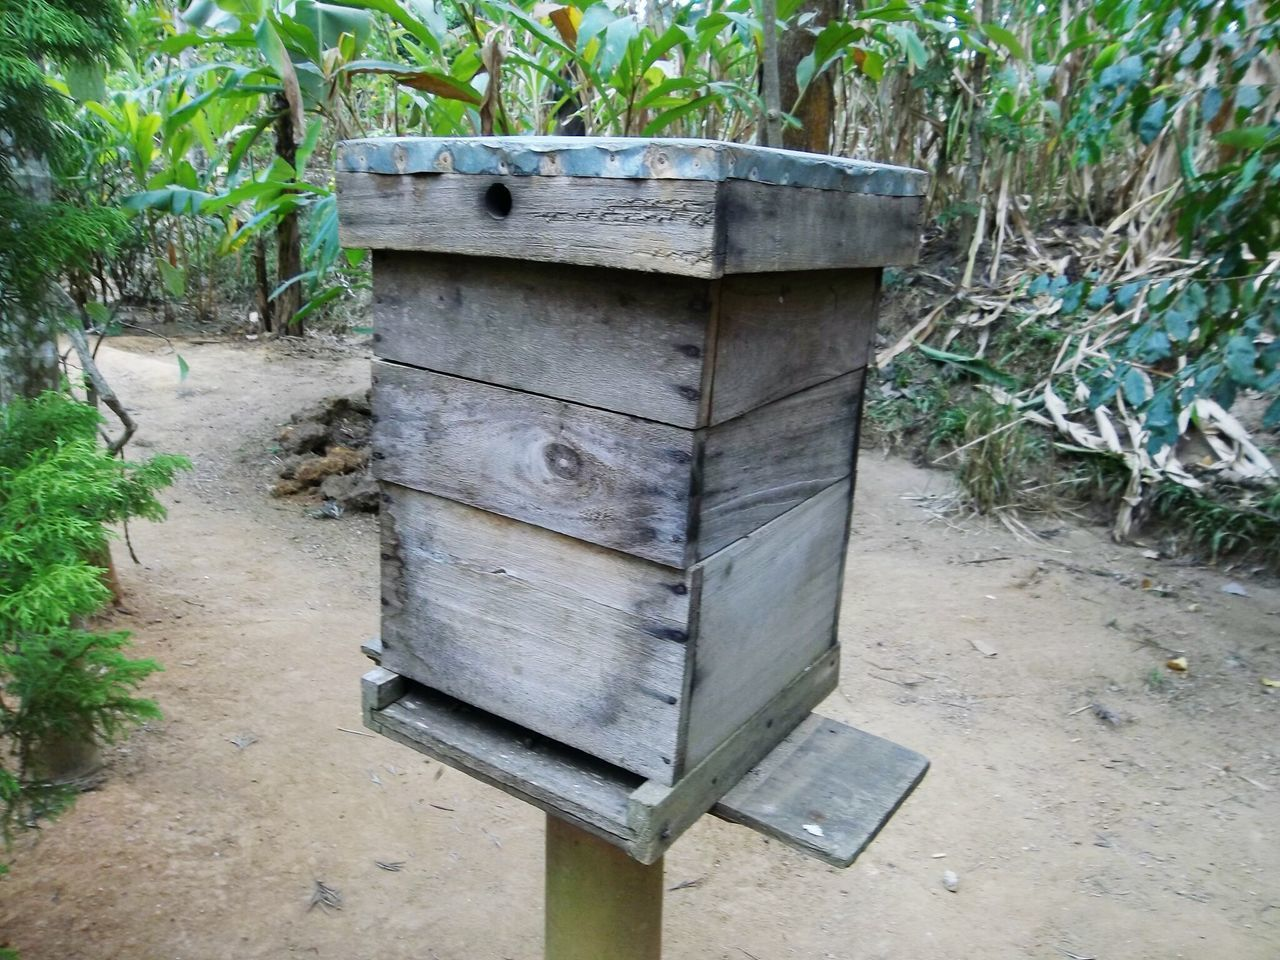 beehive, outdoors, box - container, apiculture, day, no people, wood - material, plant, animal themes, bee, nature, public mailbox, tree, close-up